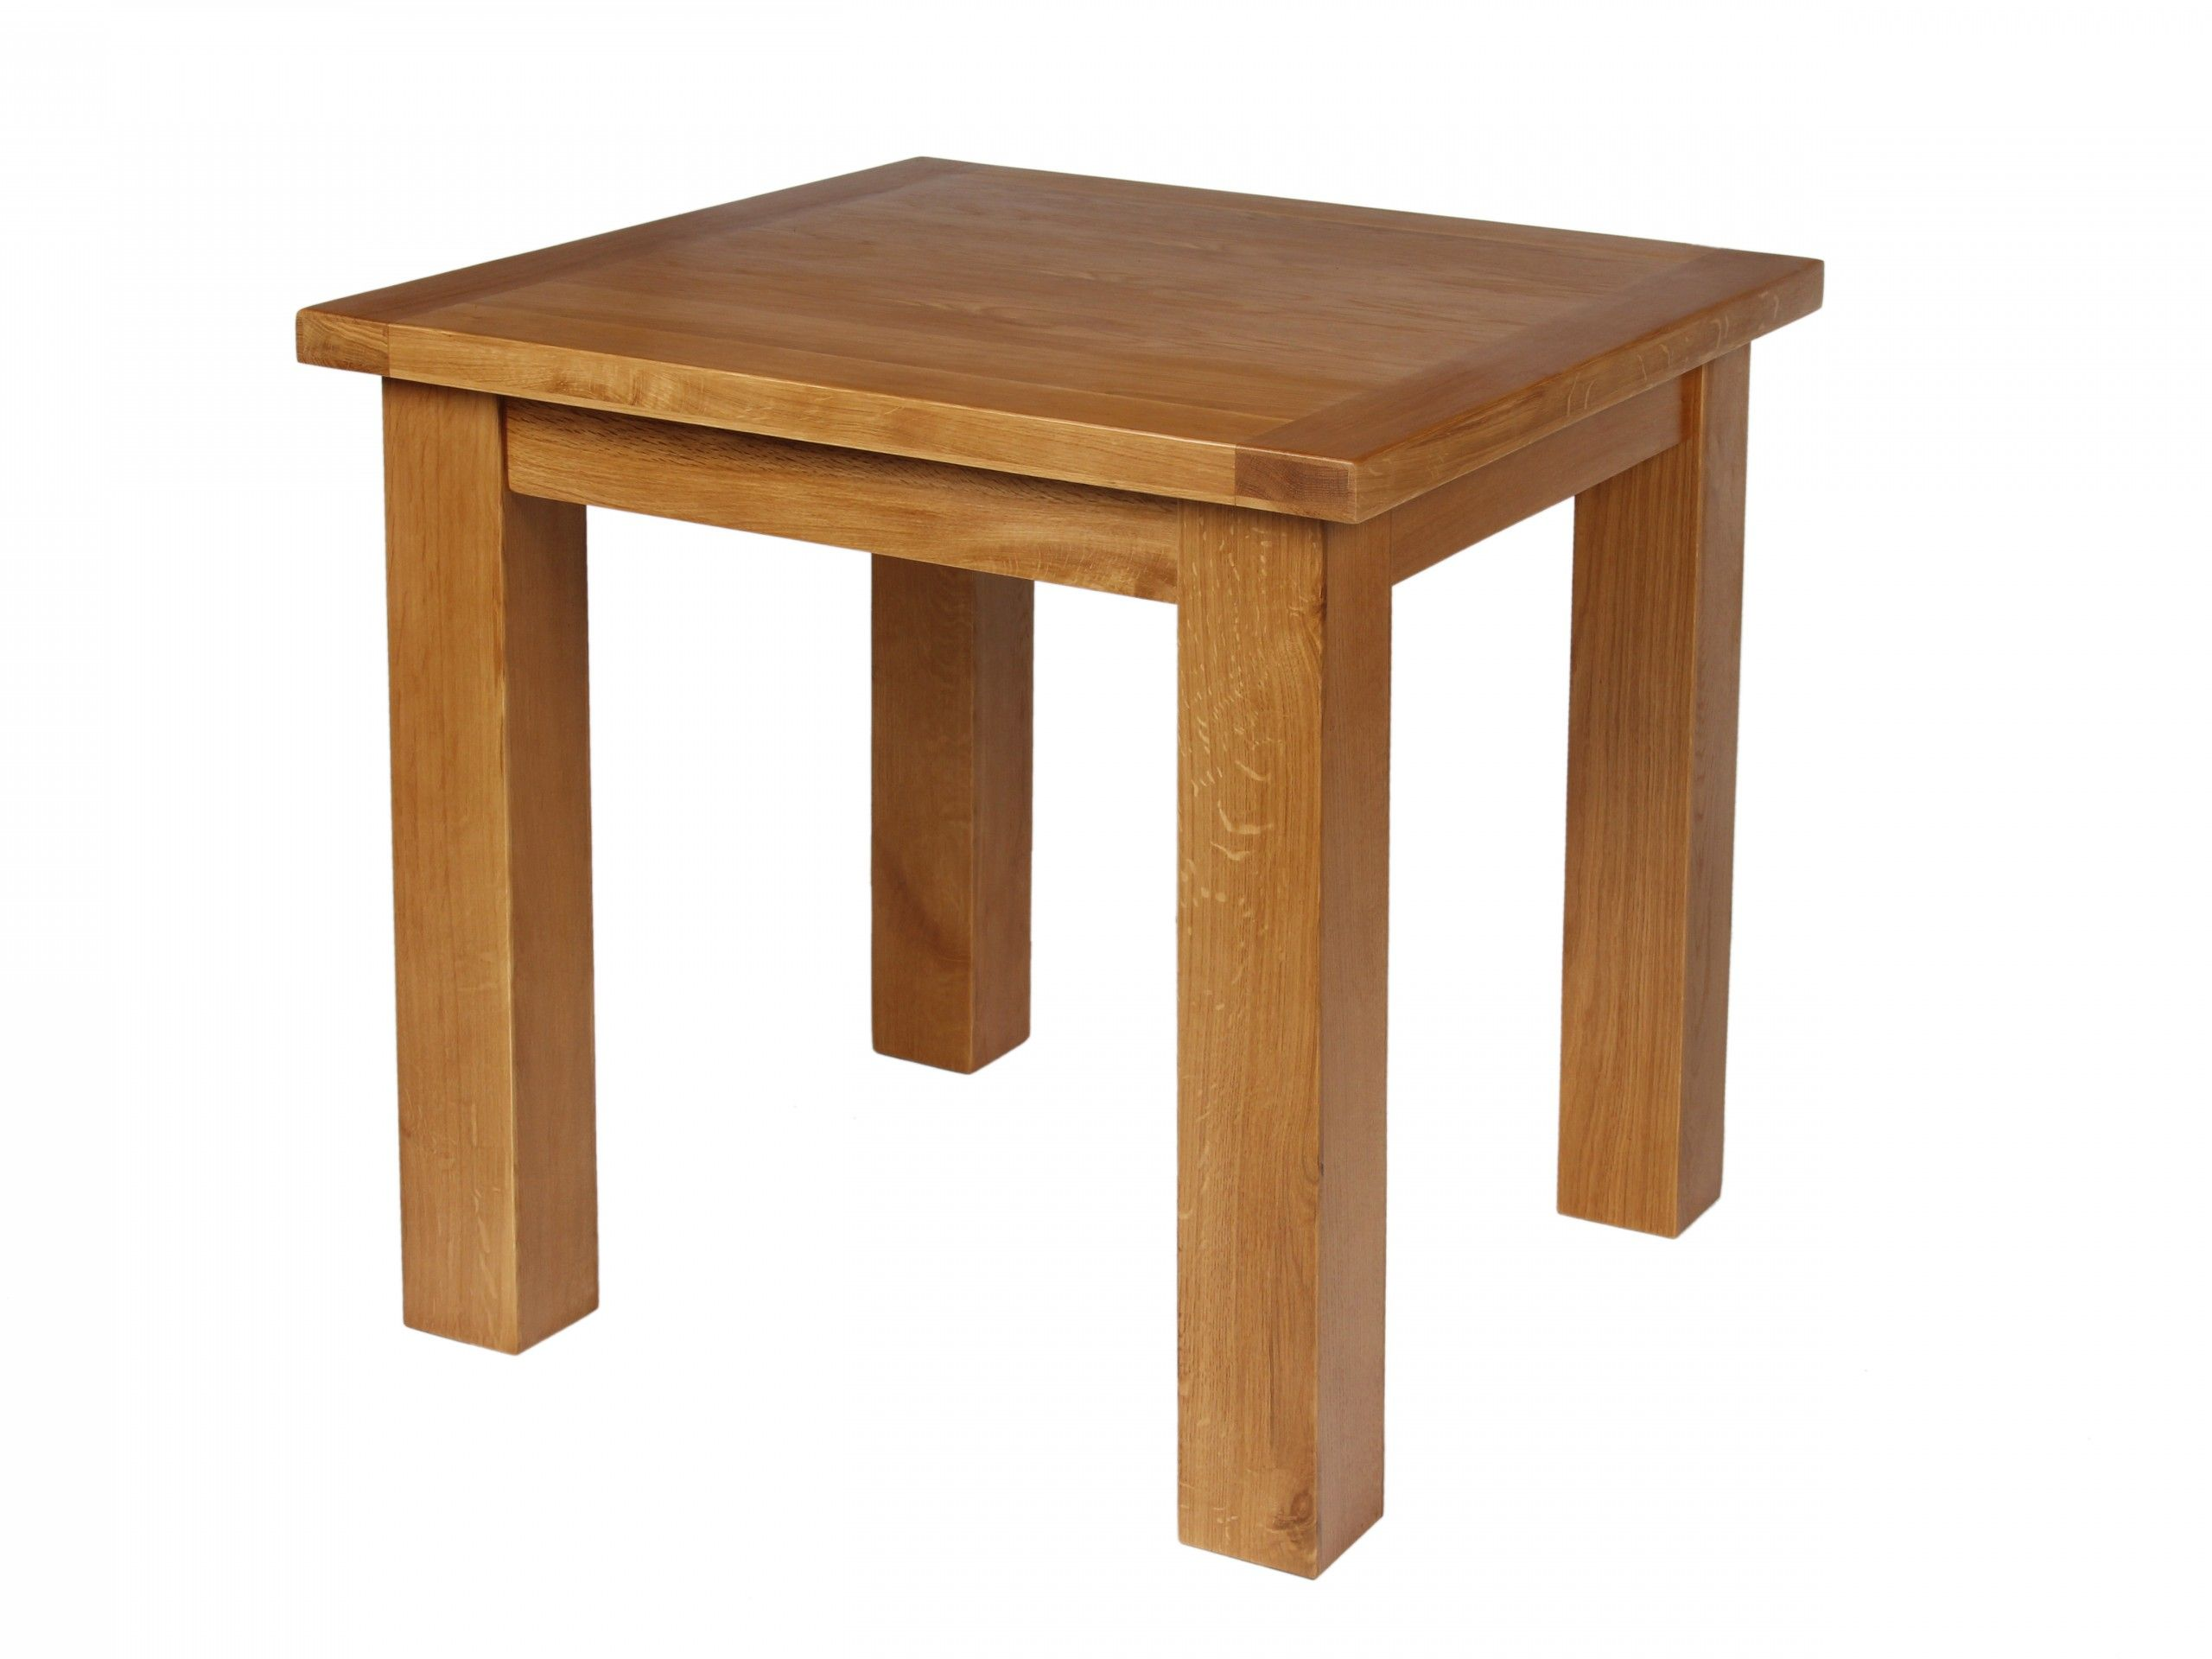 5b50f438e0af9 Country Oak Small Square 80cm wide dining table. Ideal for seating 2 - 3  people.Made from rustic American oak sourced from sustainable managed  forests.